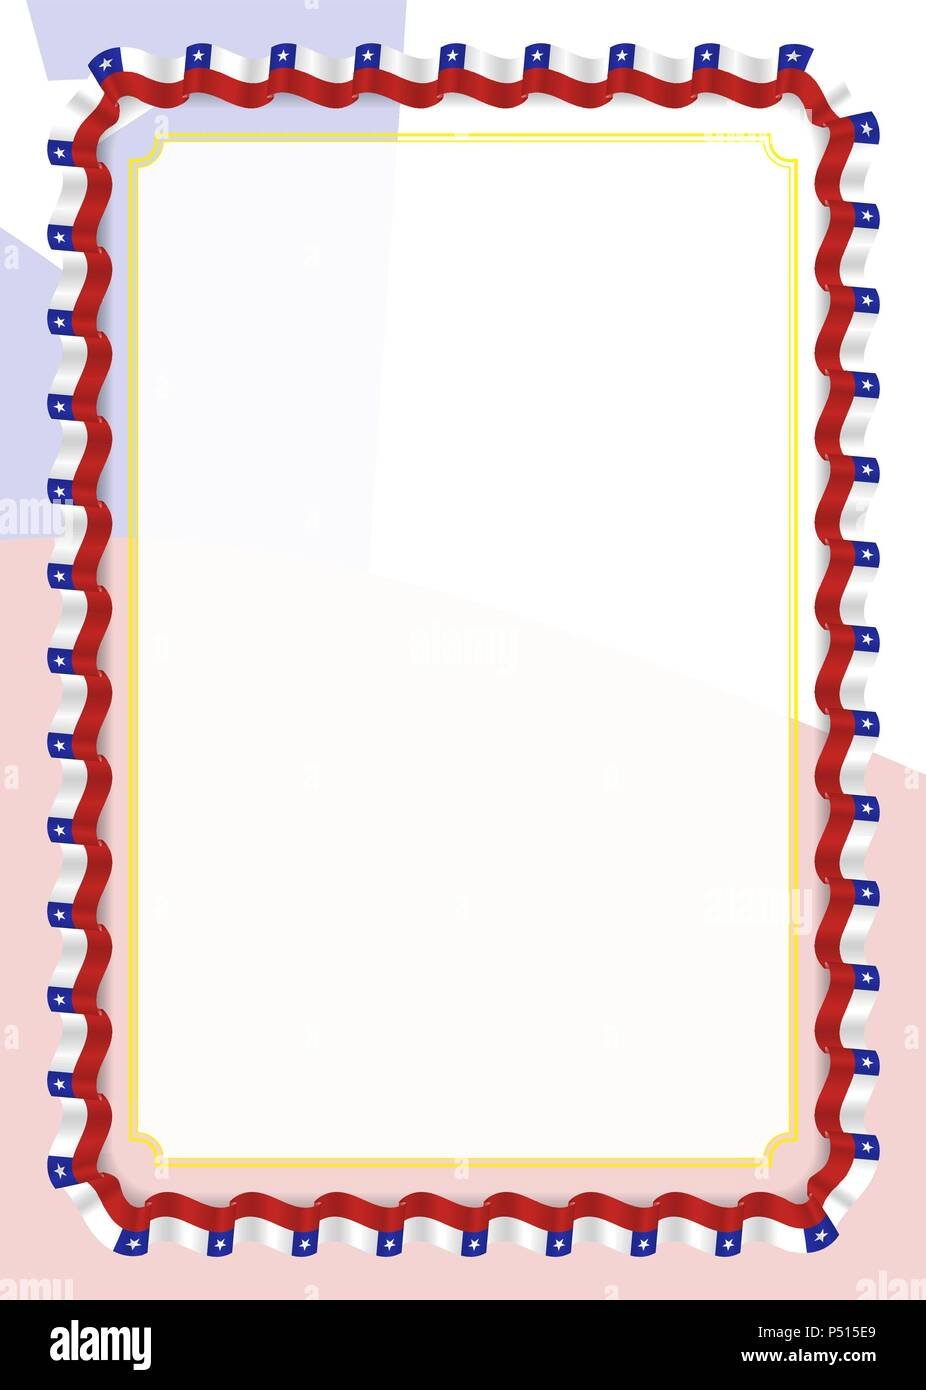 Frame and border of ribbon with Chile flag, template elements for ...